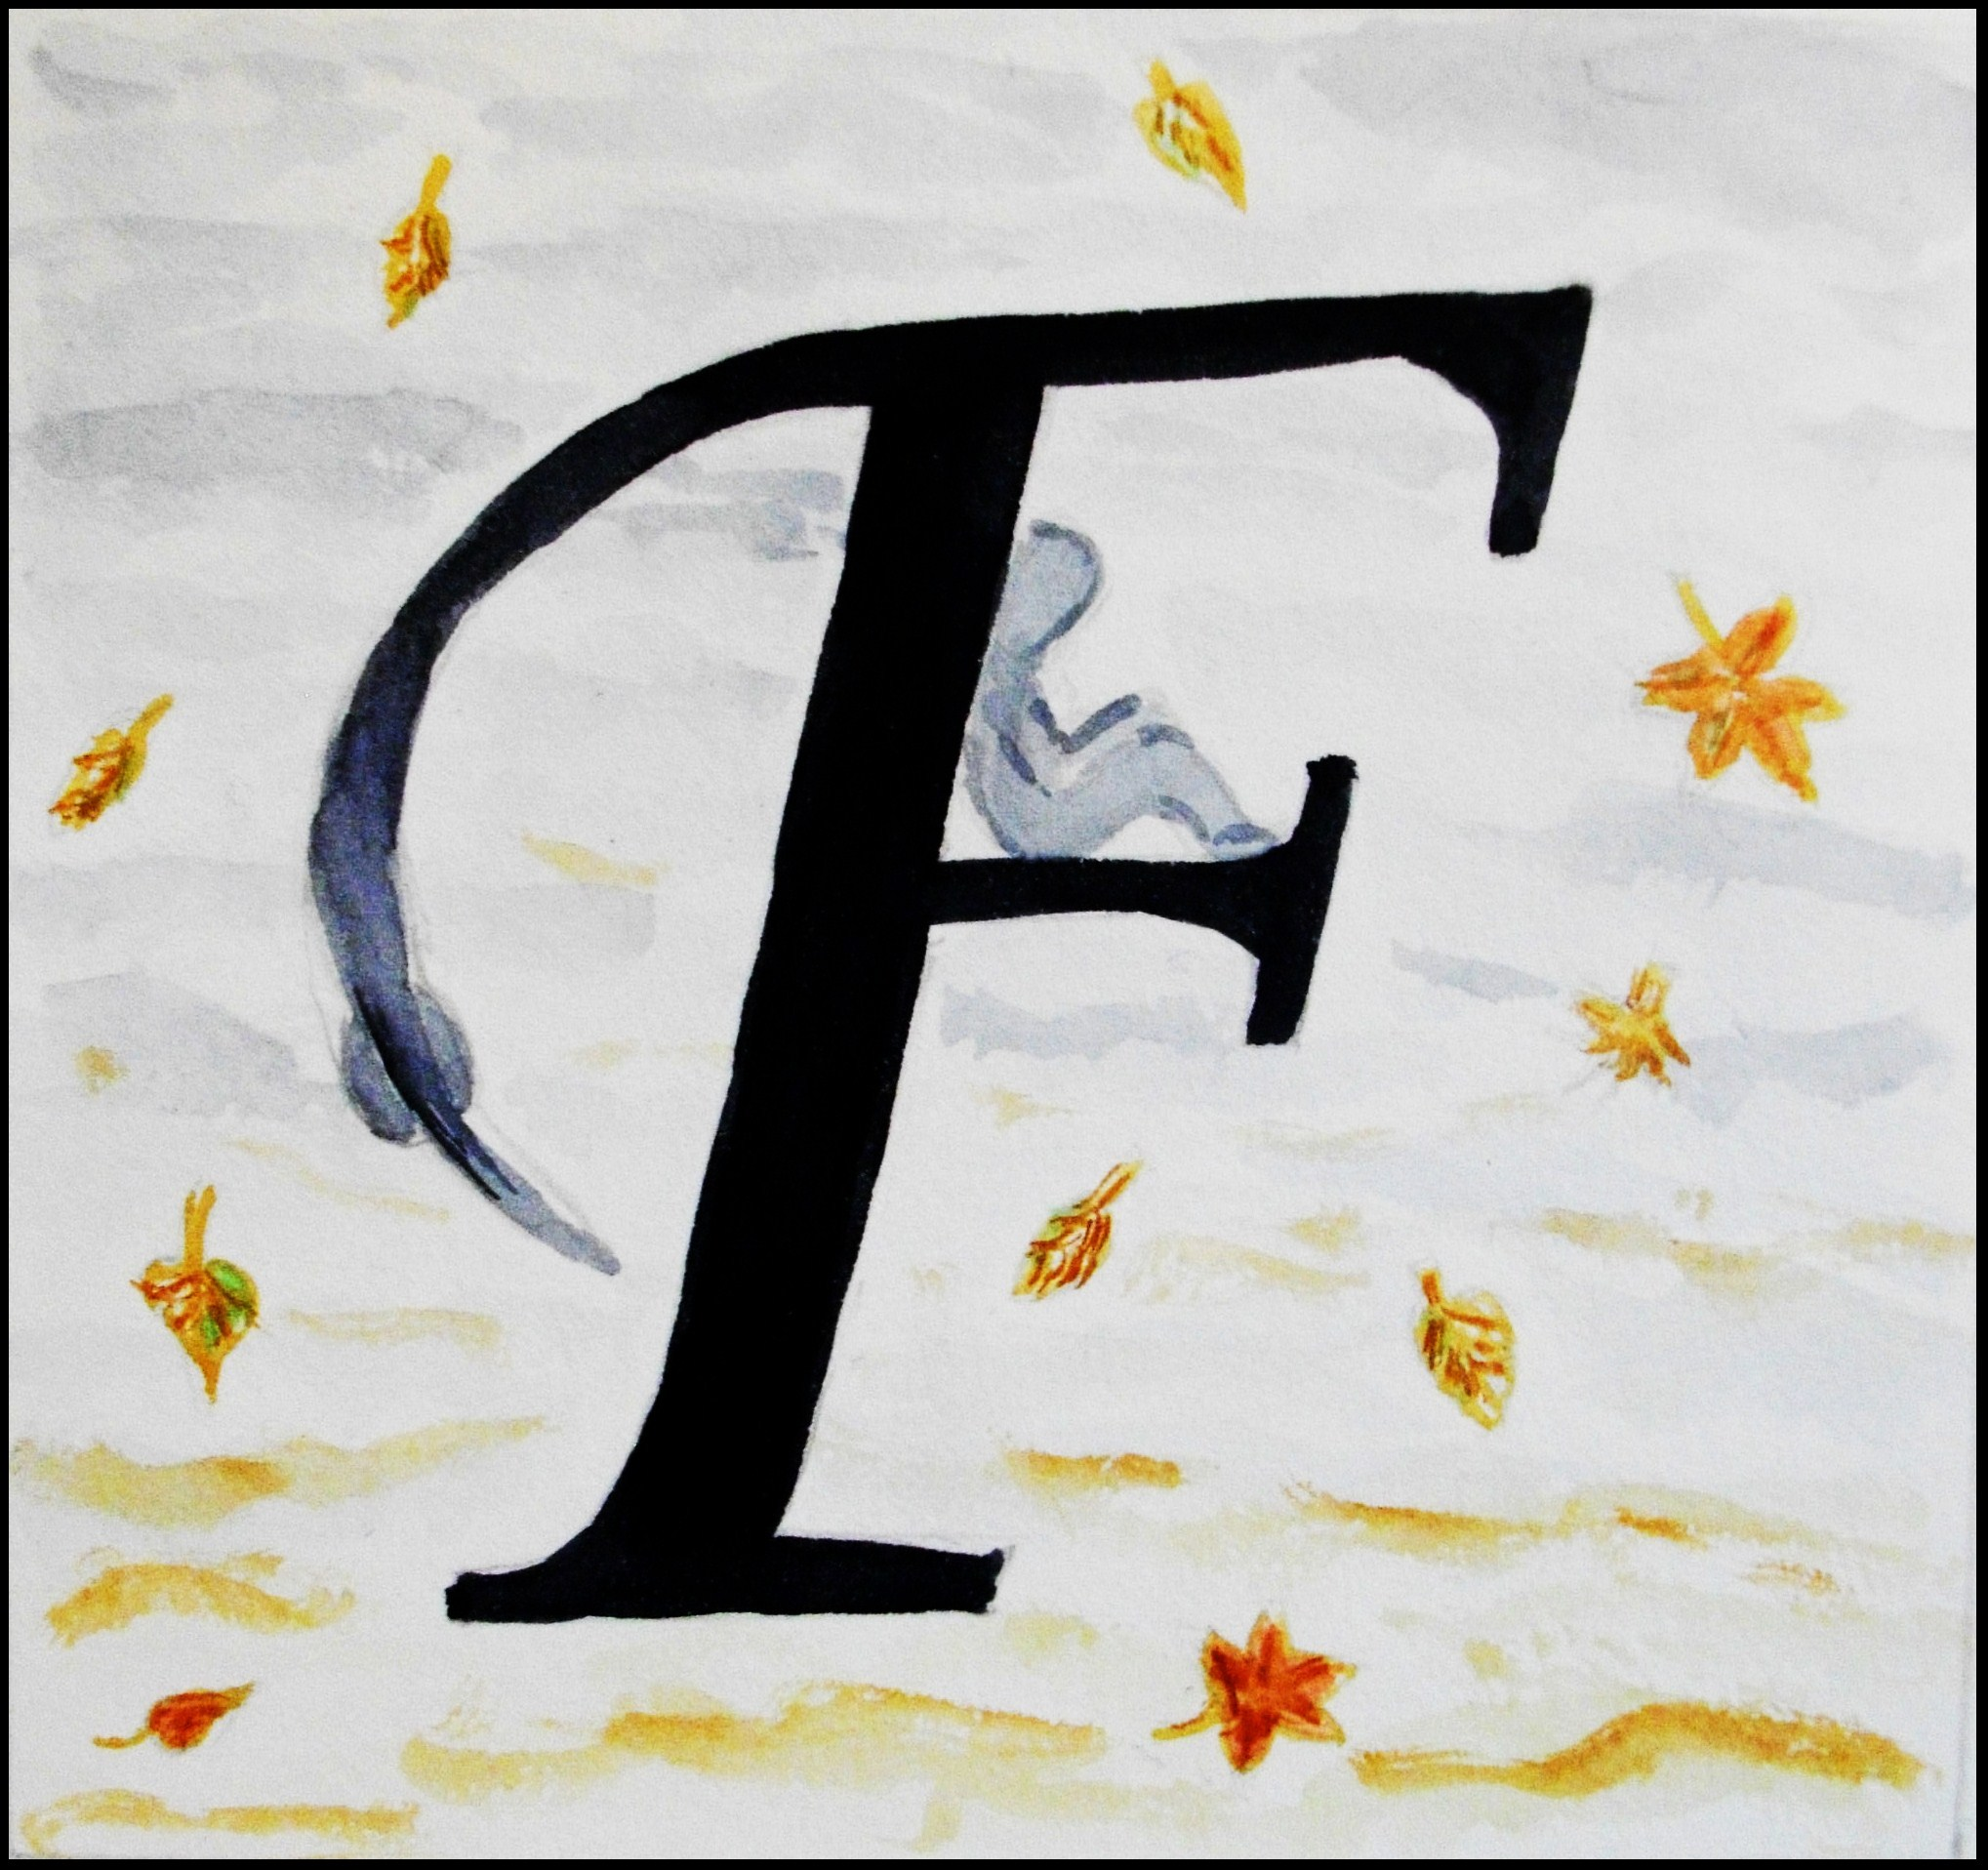 Download Letter F Wall...F Letter Wallpapers For Mobile